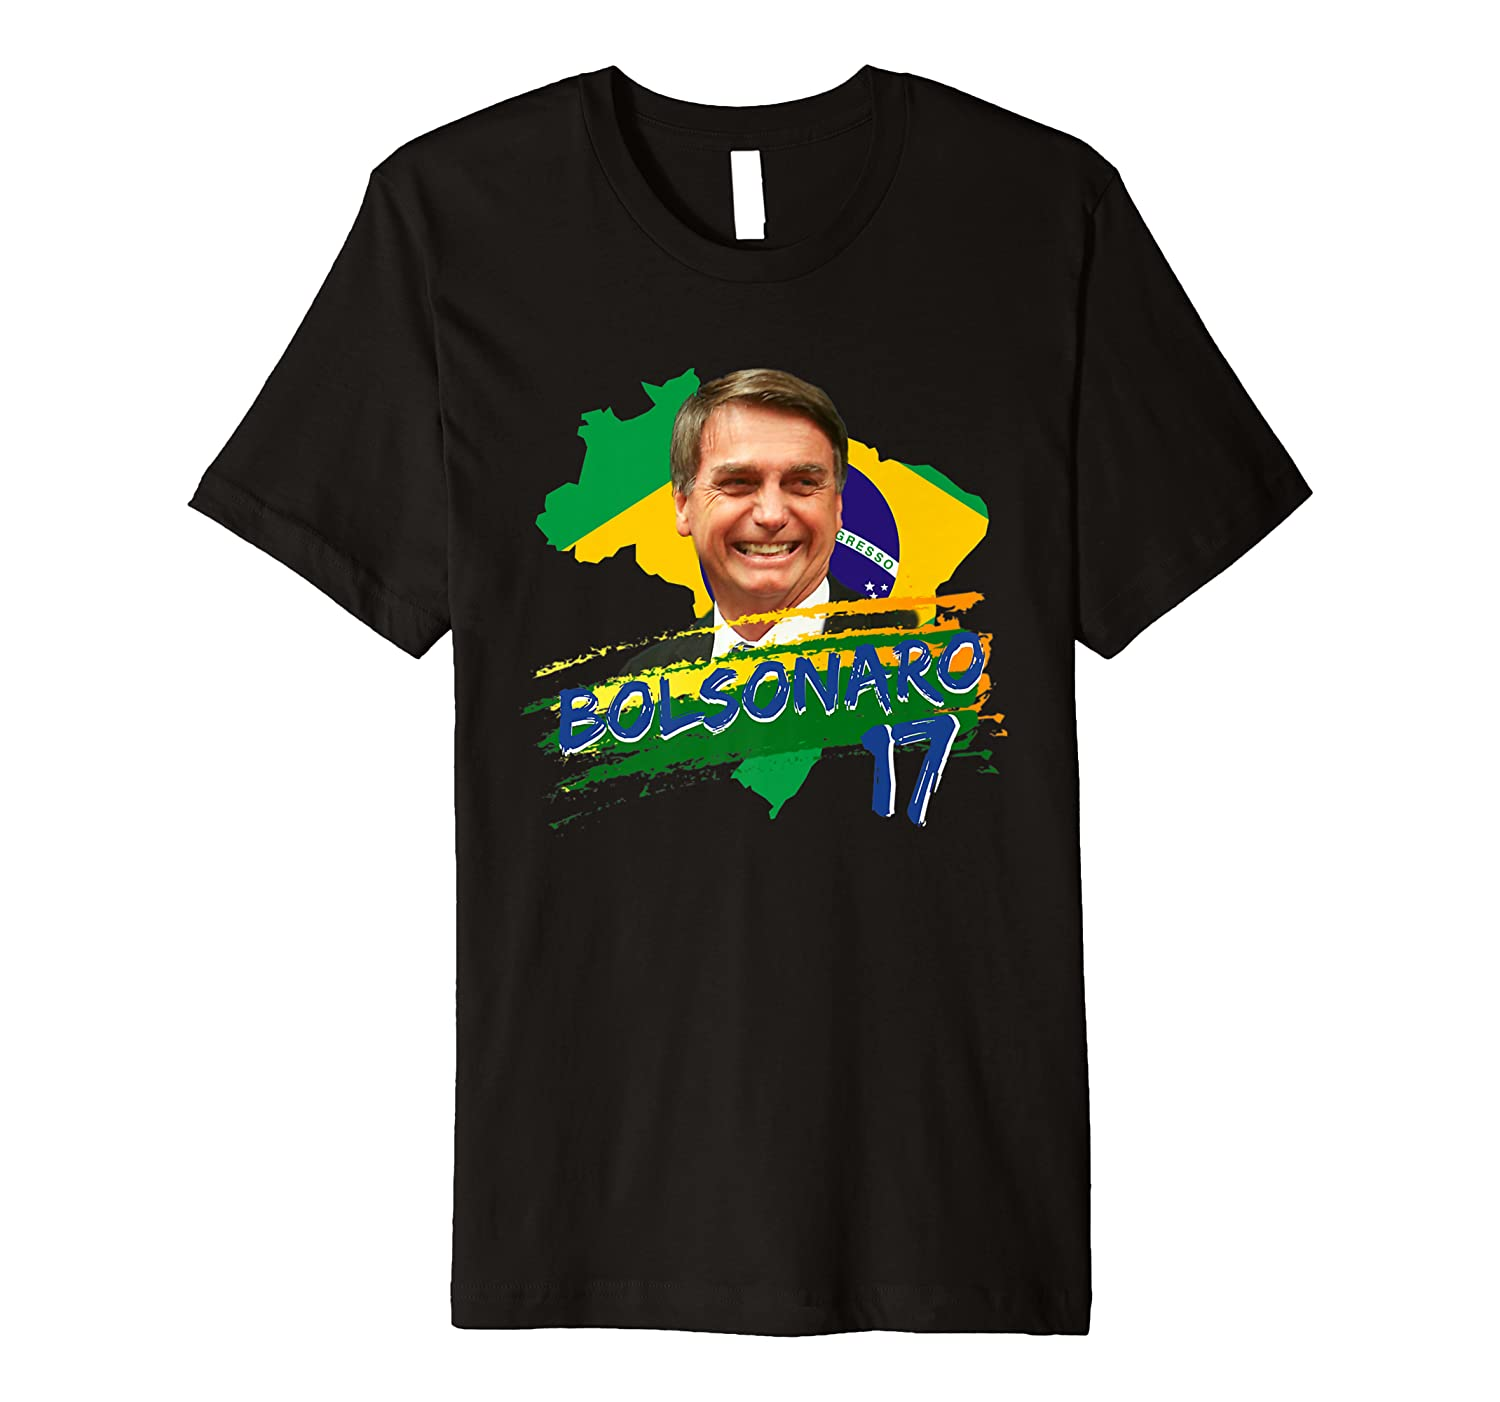 Camiseta Bolsonaro 17 2018 Brazilian Election T-Shirt